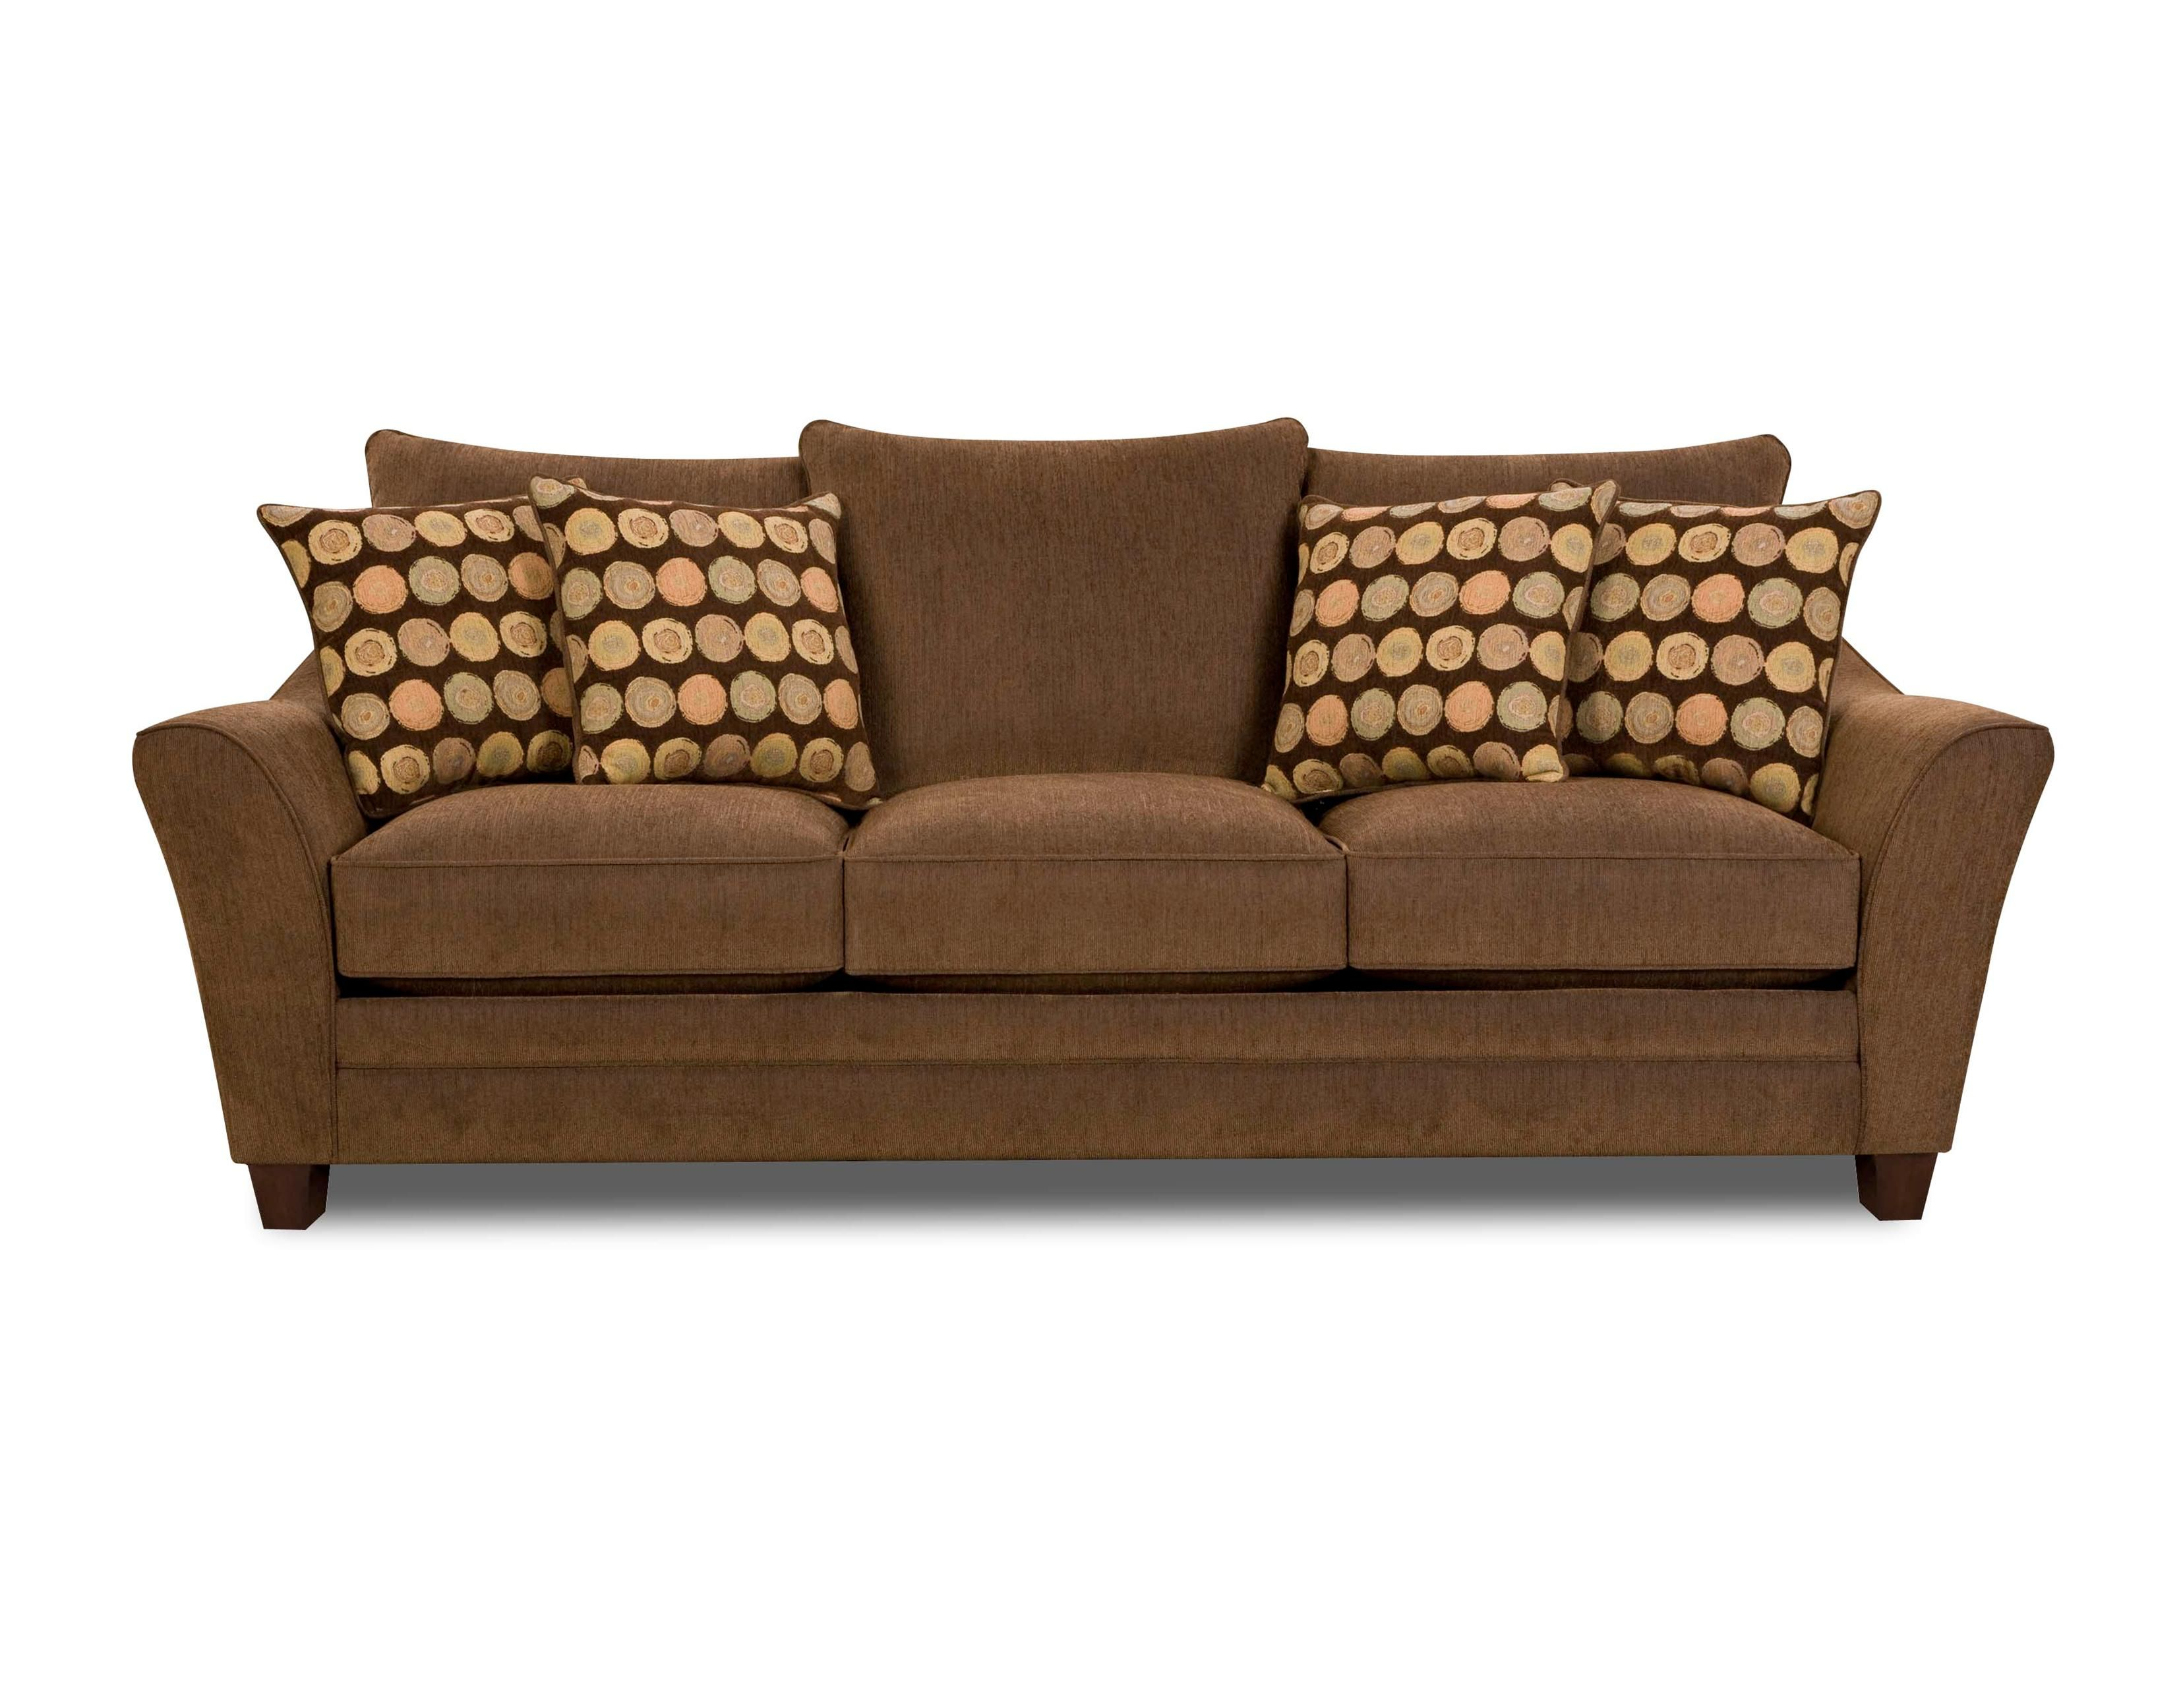 A Local Favorite Here At The Great American Home Store Sporty Mocha Sofa By Corinthian Furniture